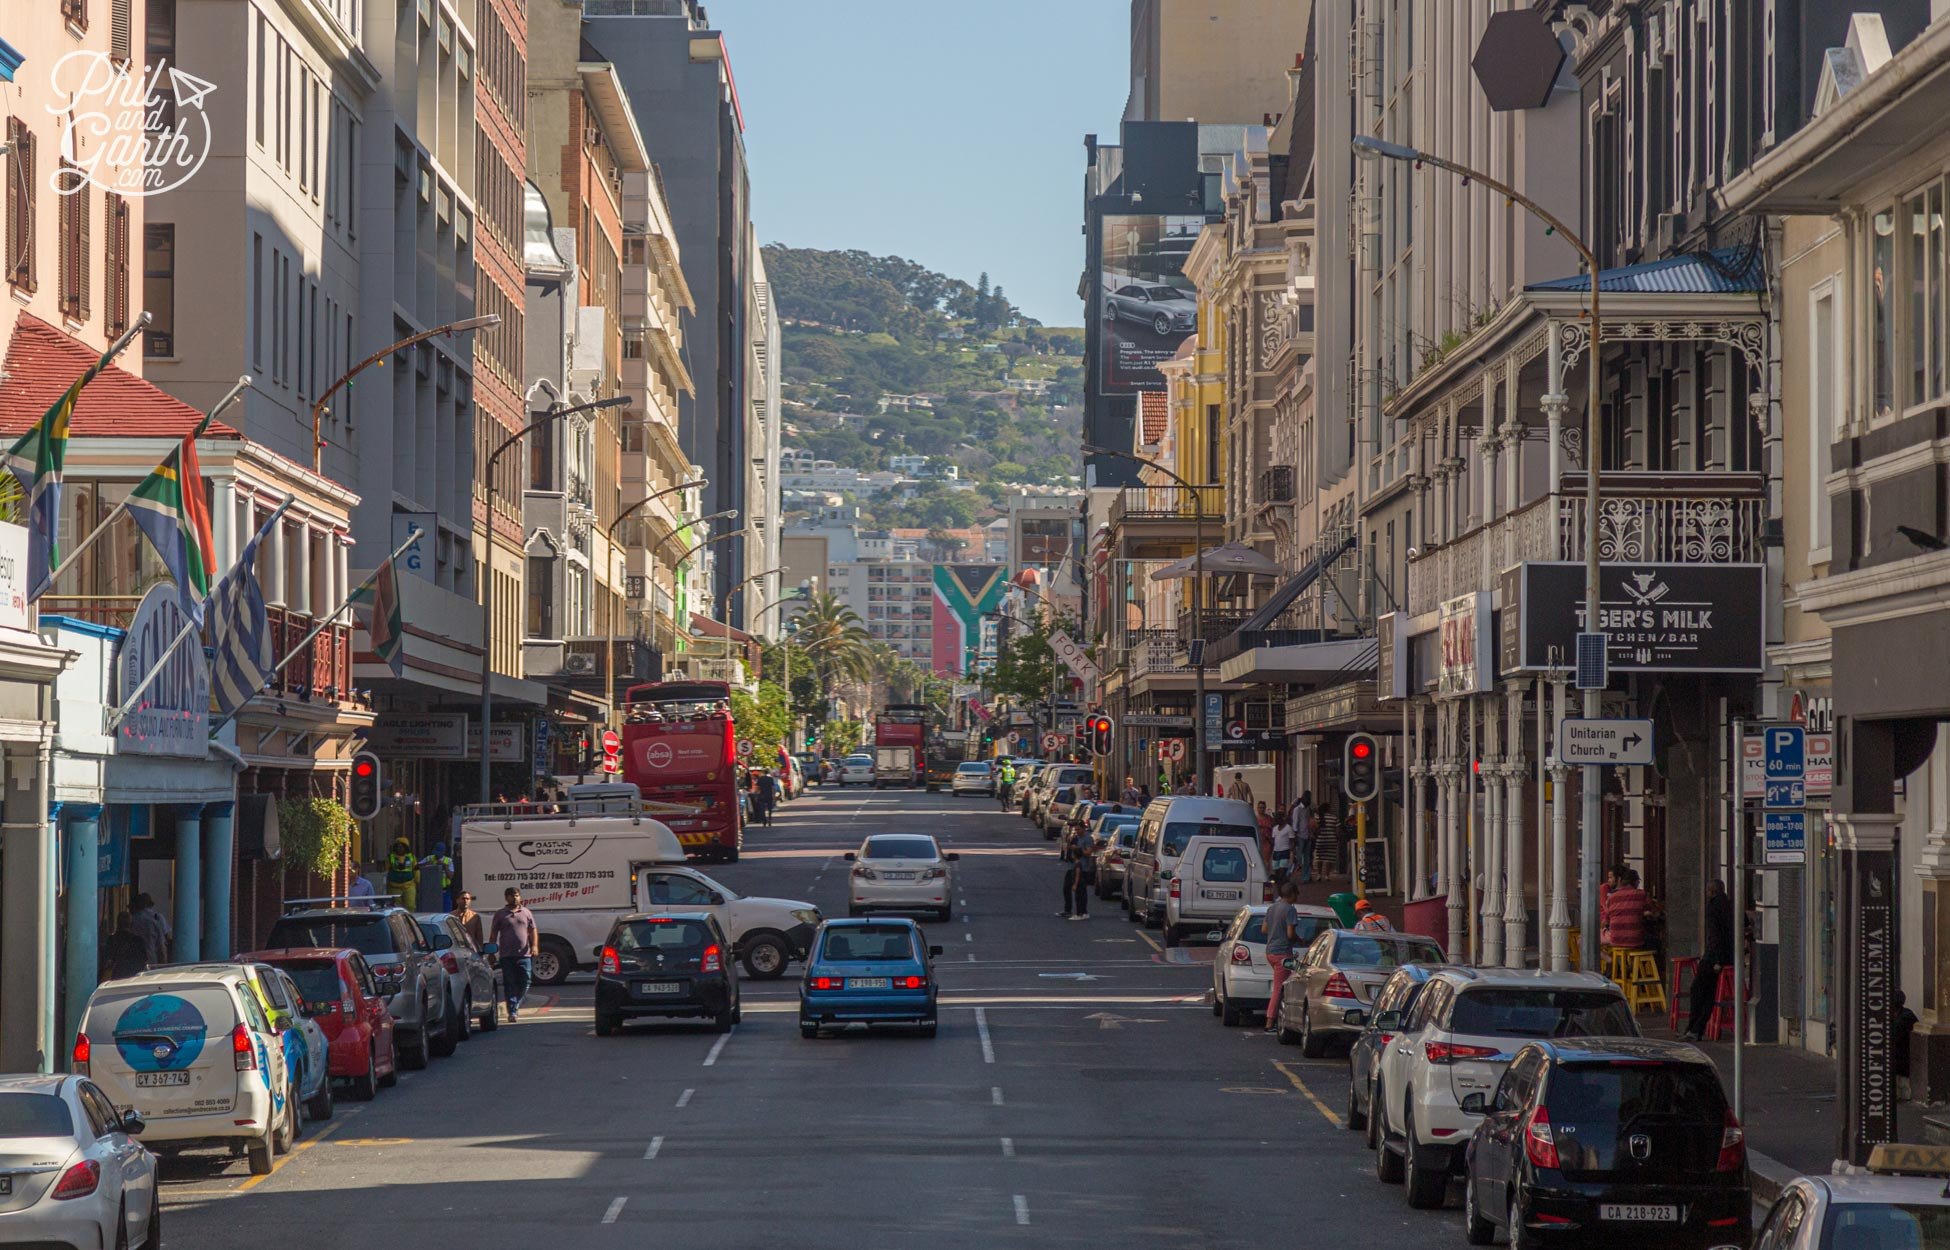 Long Street for some of Cape Town's hippest hangouts